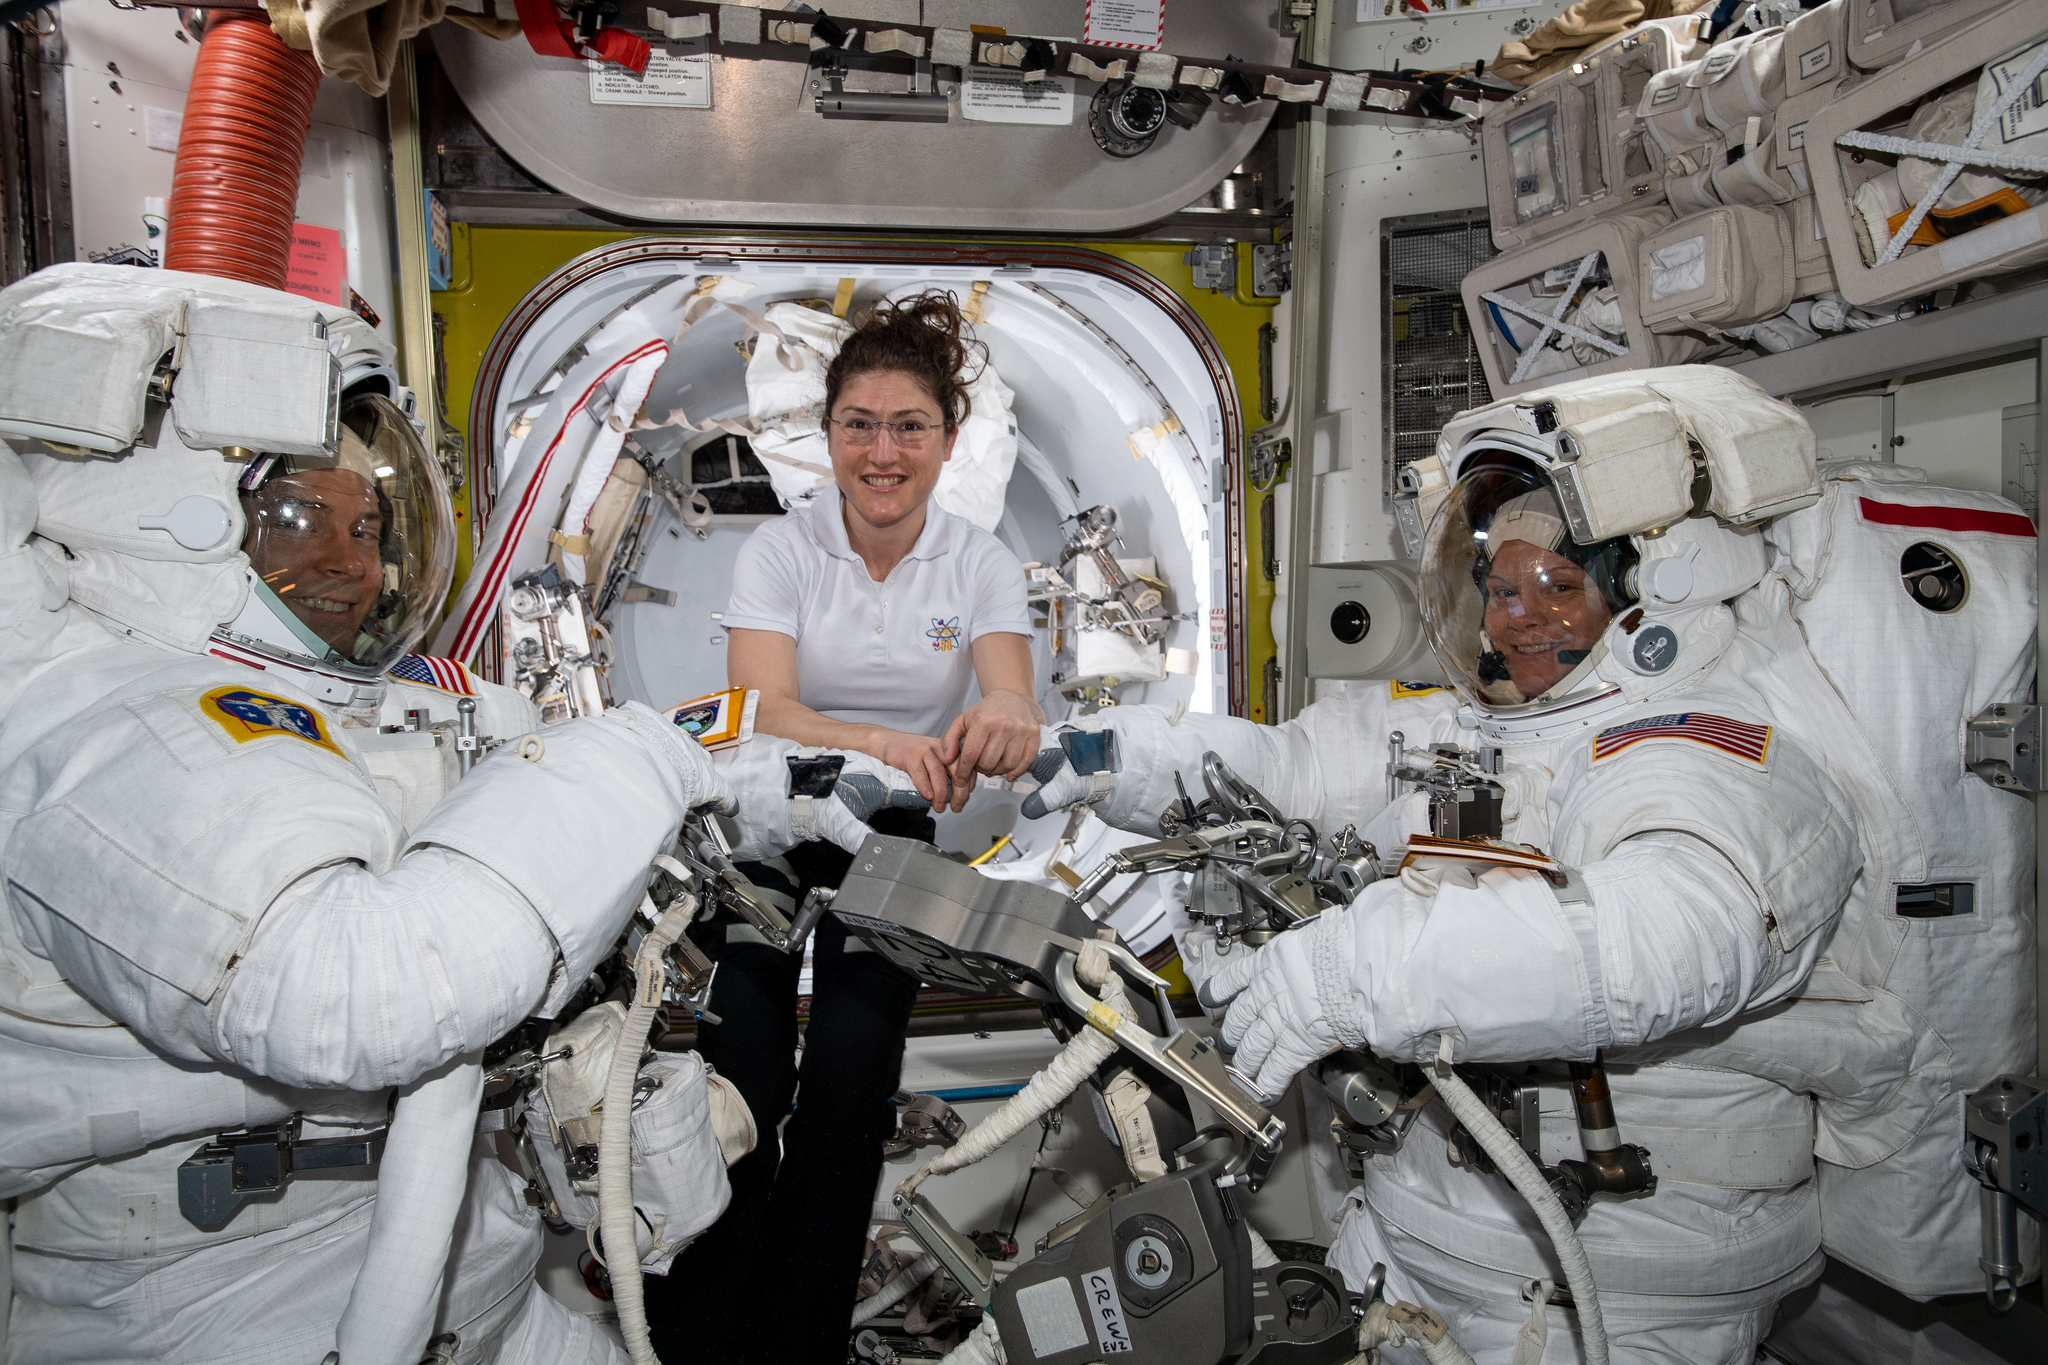 Nick Hague, left, and Anne McClain, right, are assisted in their spacesuits by Christina Koch for their March 22, 2019, spacewalk. Credit: NASA